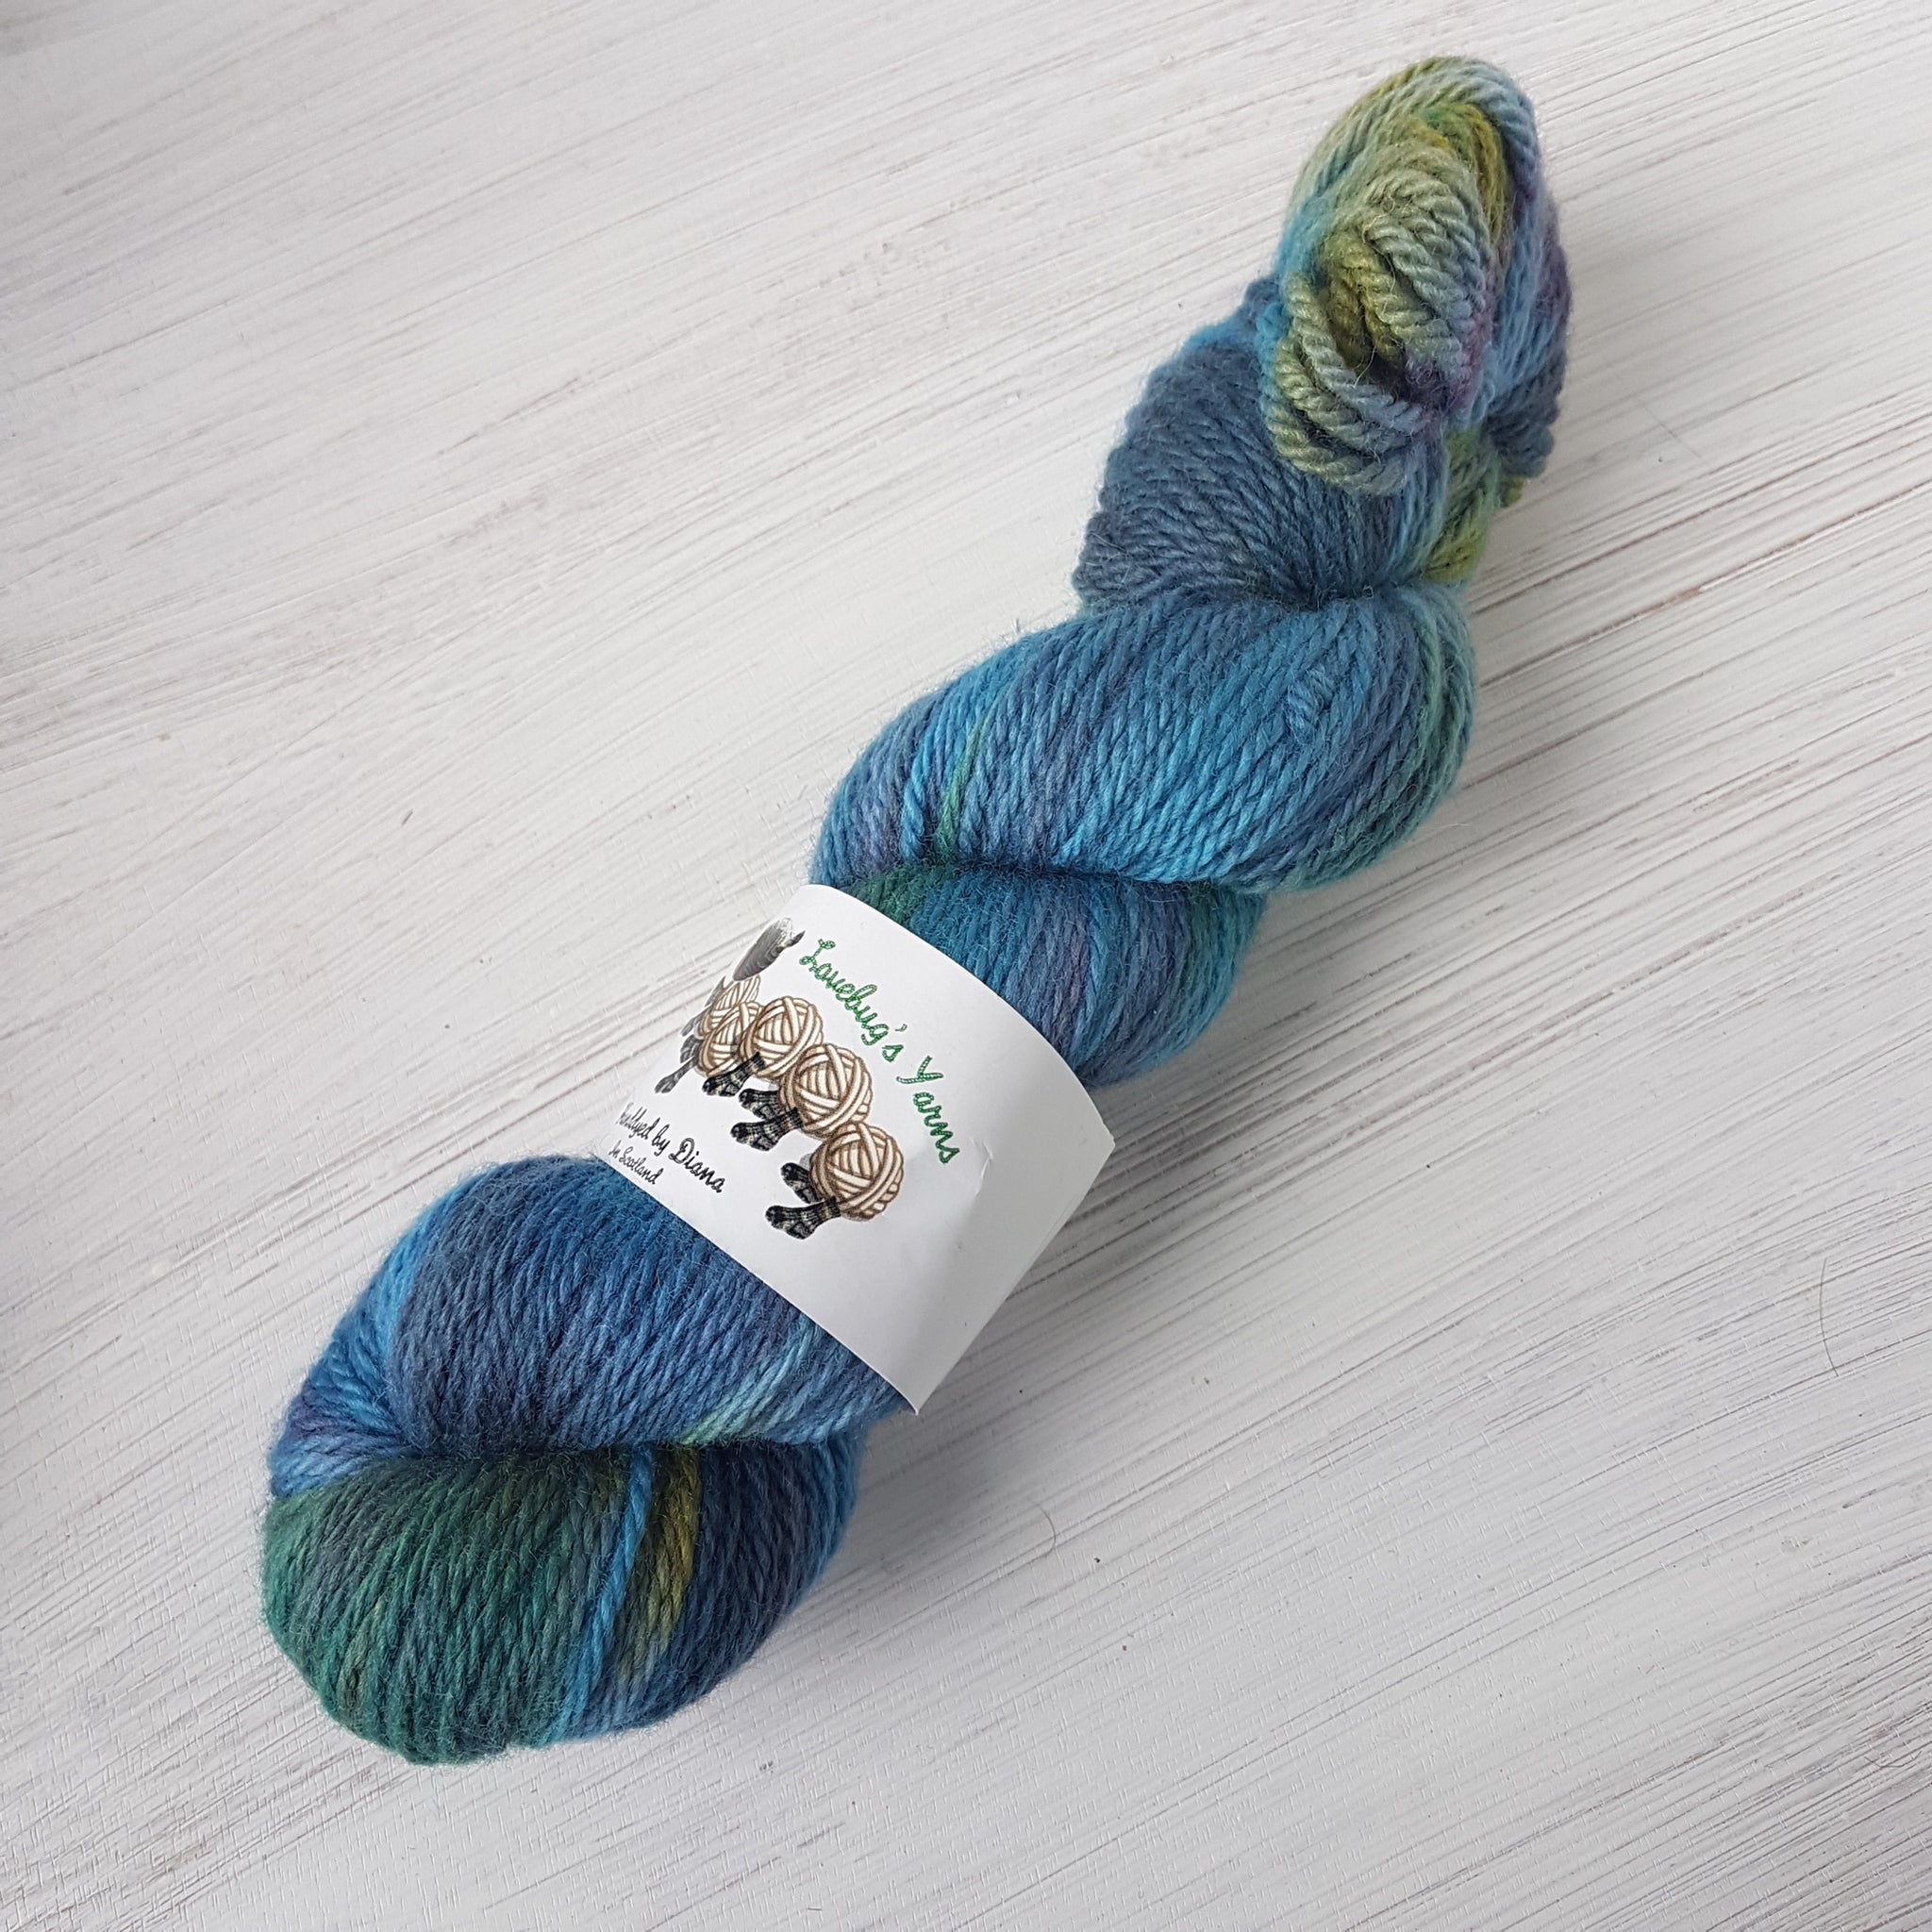 River Tay - BFL Aran (discontinued) - Bluefaced Leicester wool - Aran weight yarn